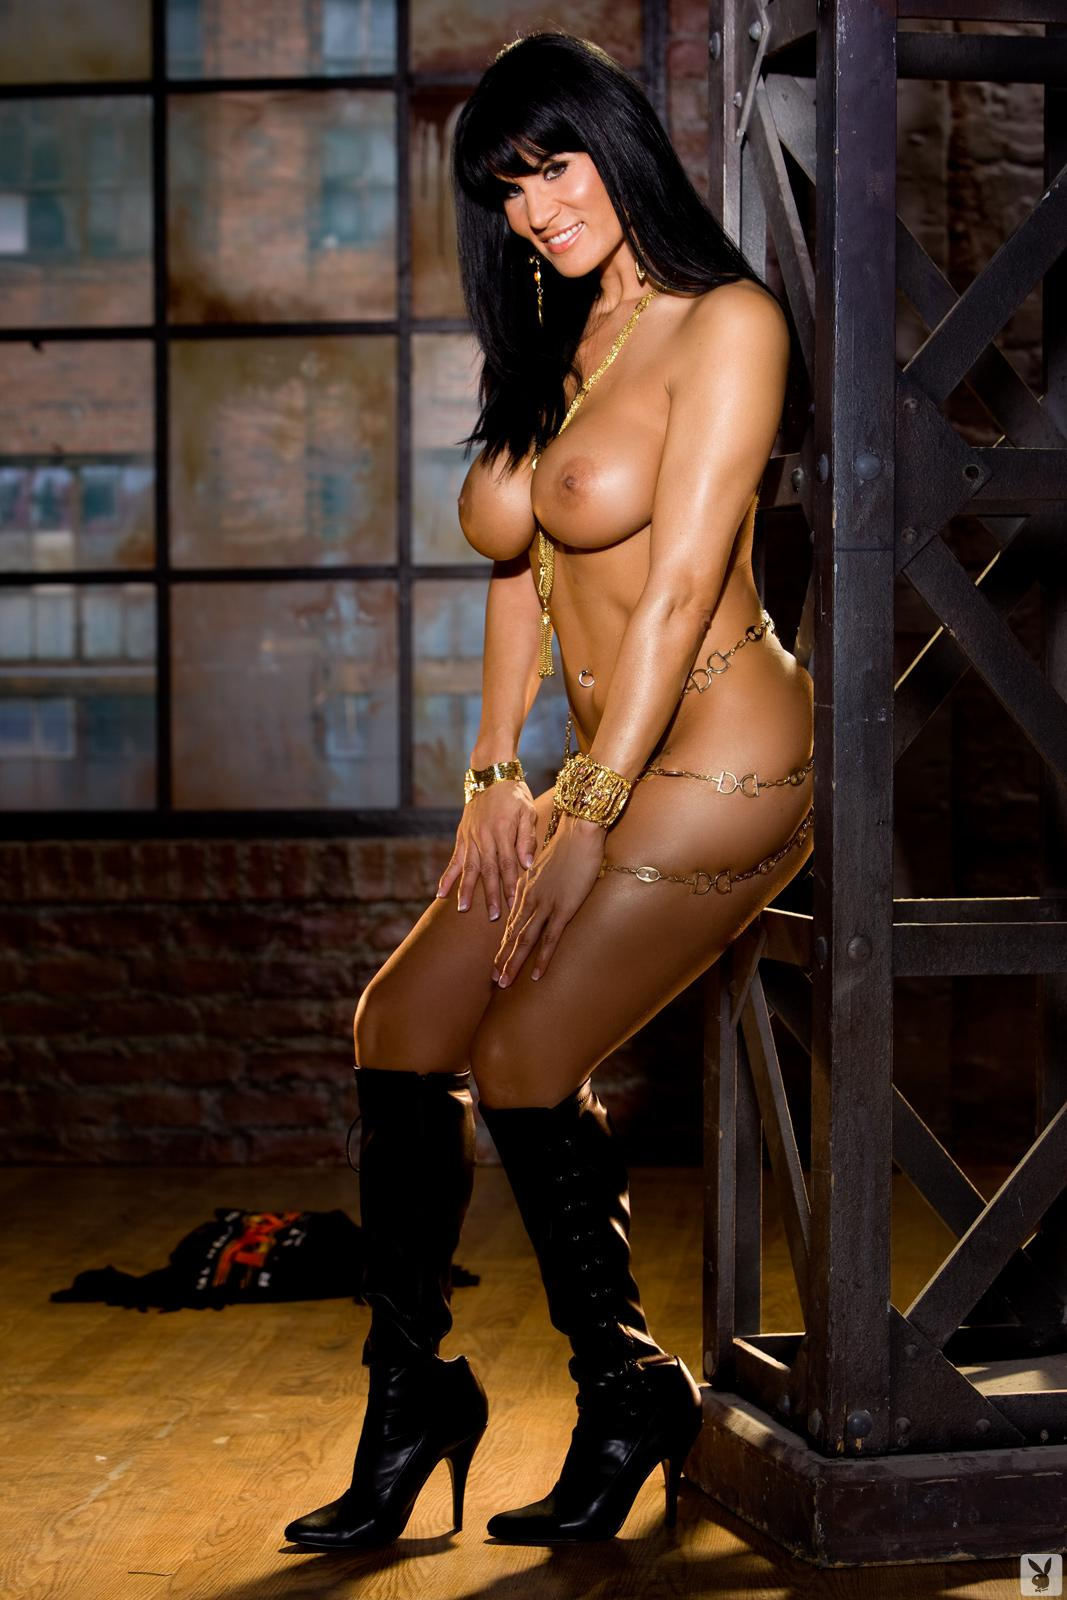 Are mistaken. nude pics of tna sorry, that